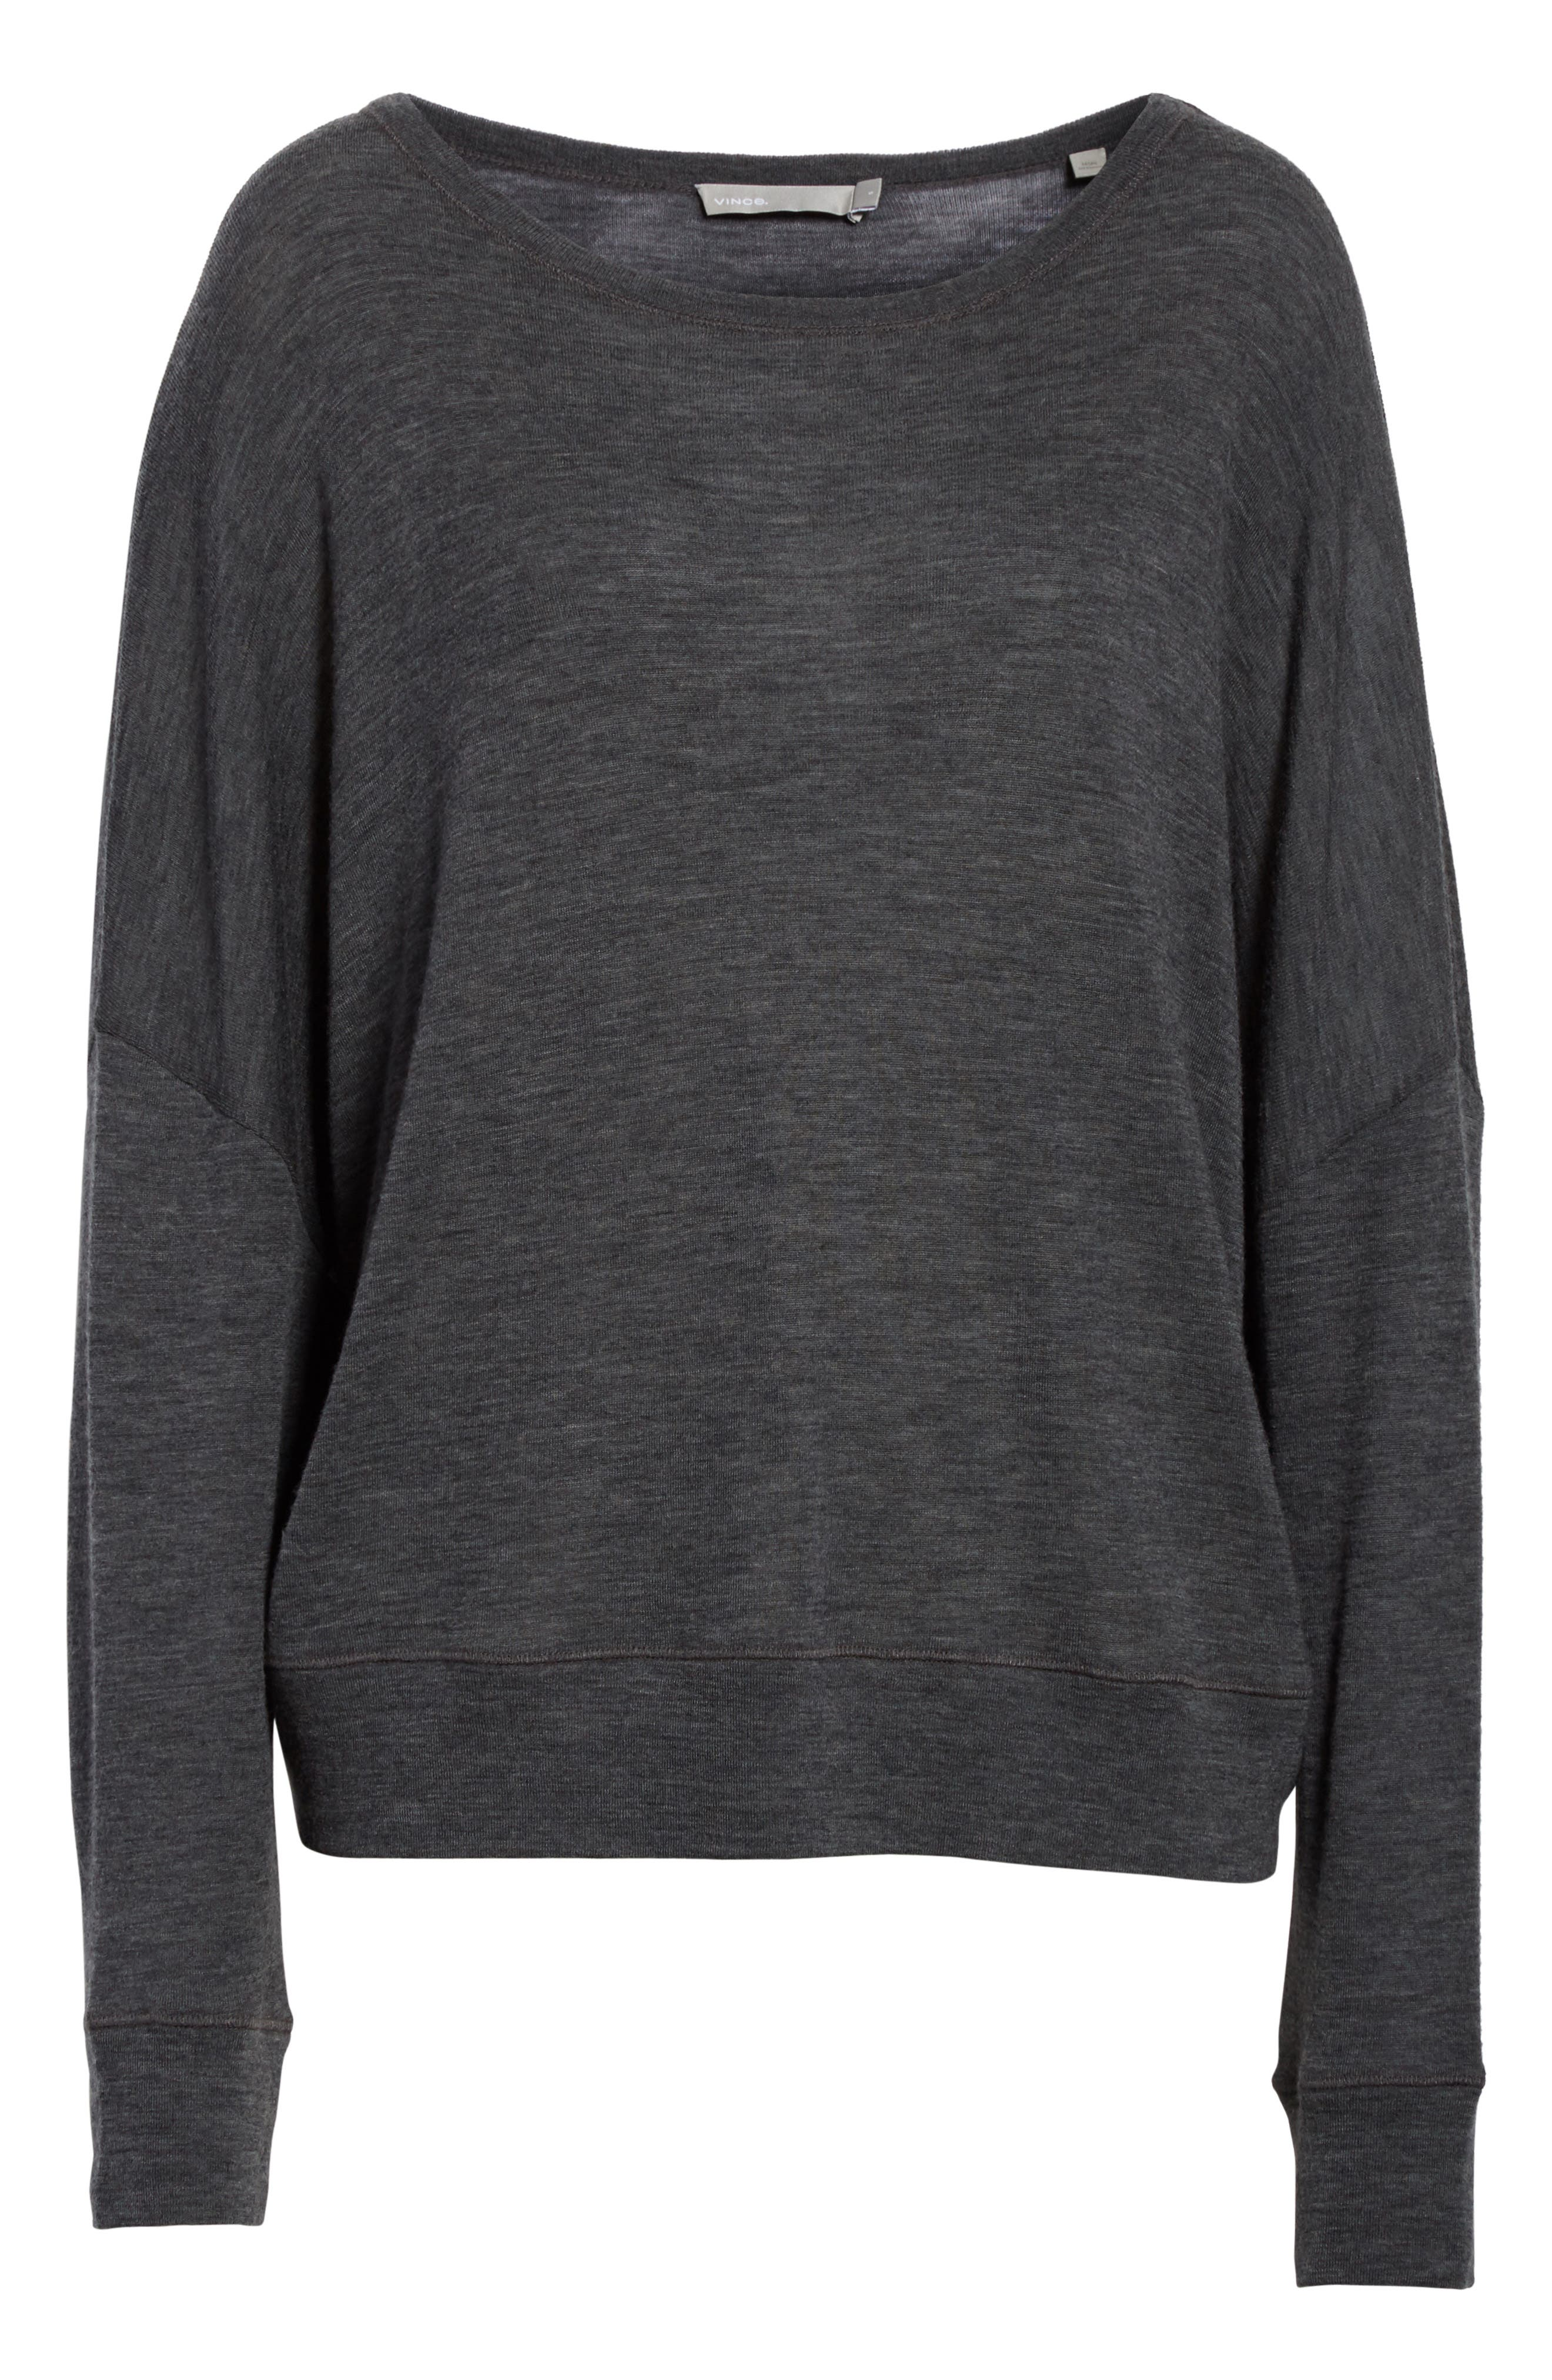 Wool Pullover,                             Alternate thumbnail 6, color,                             033